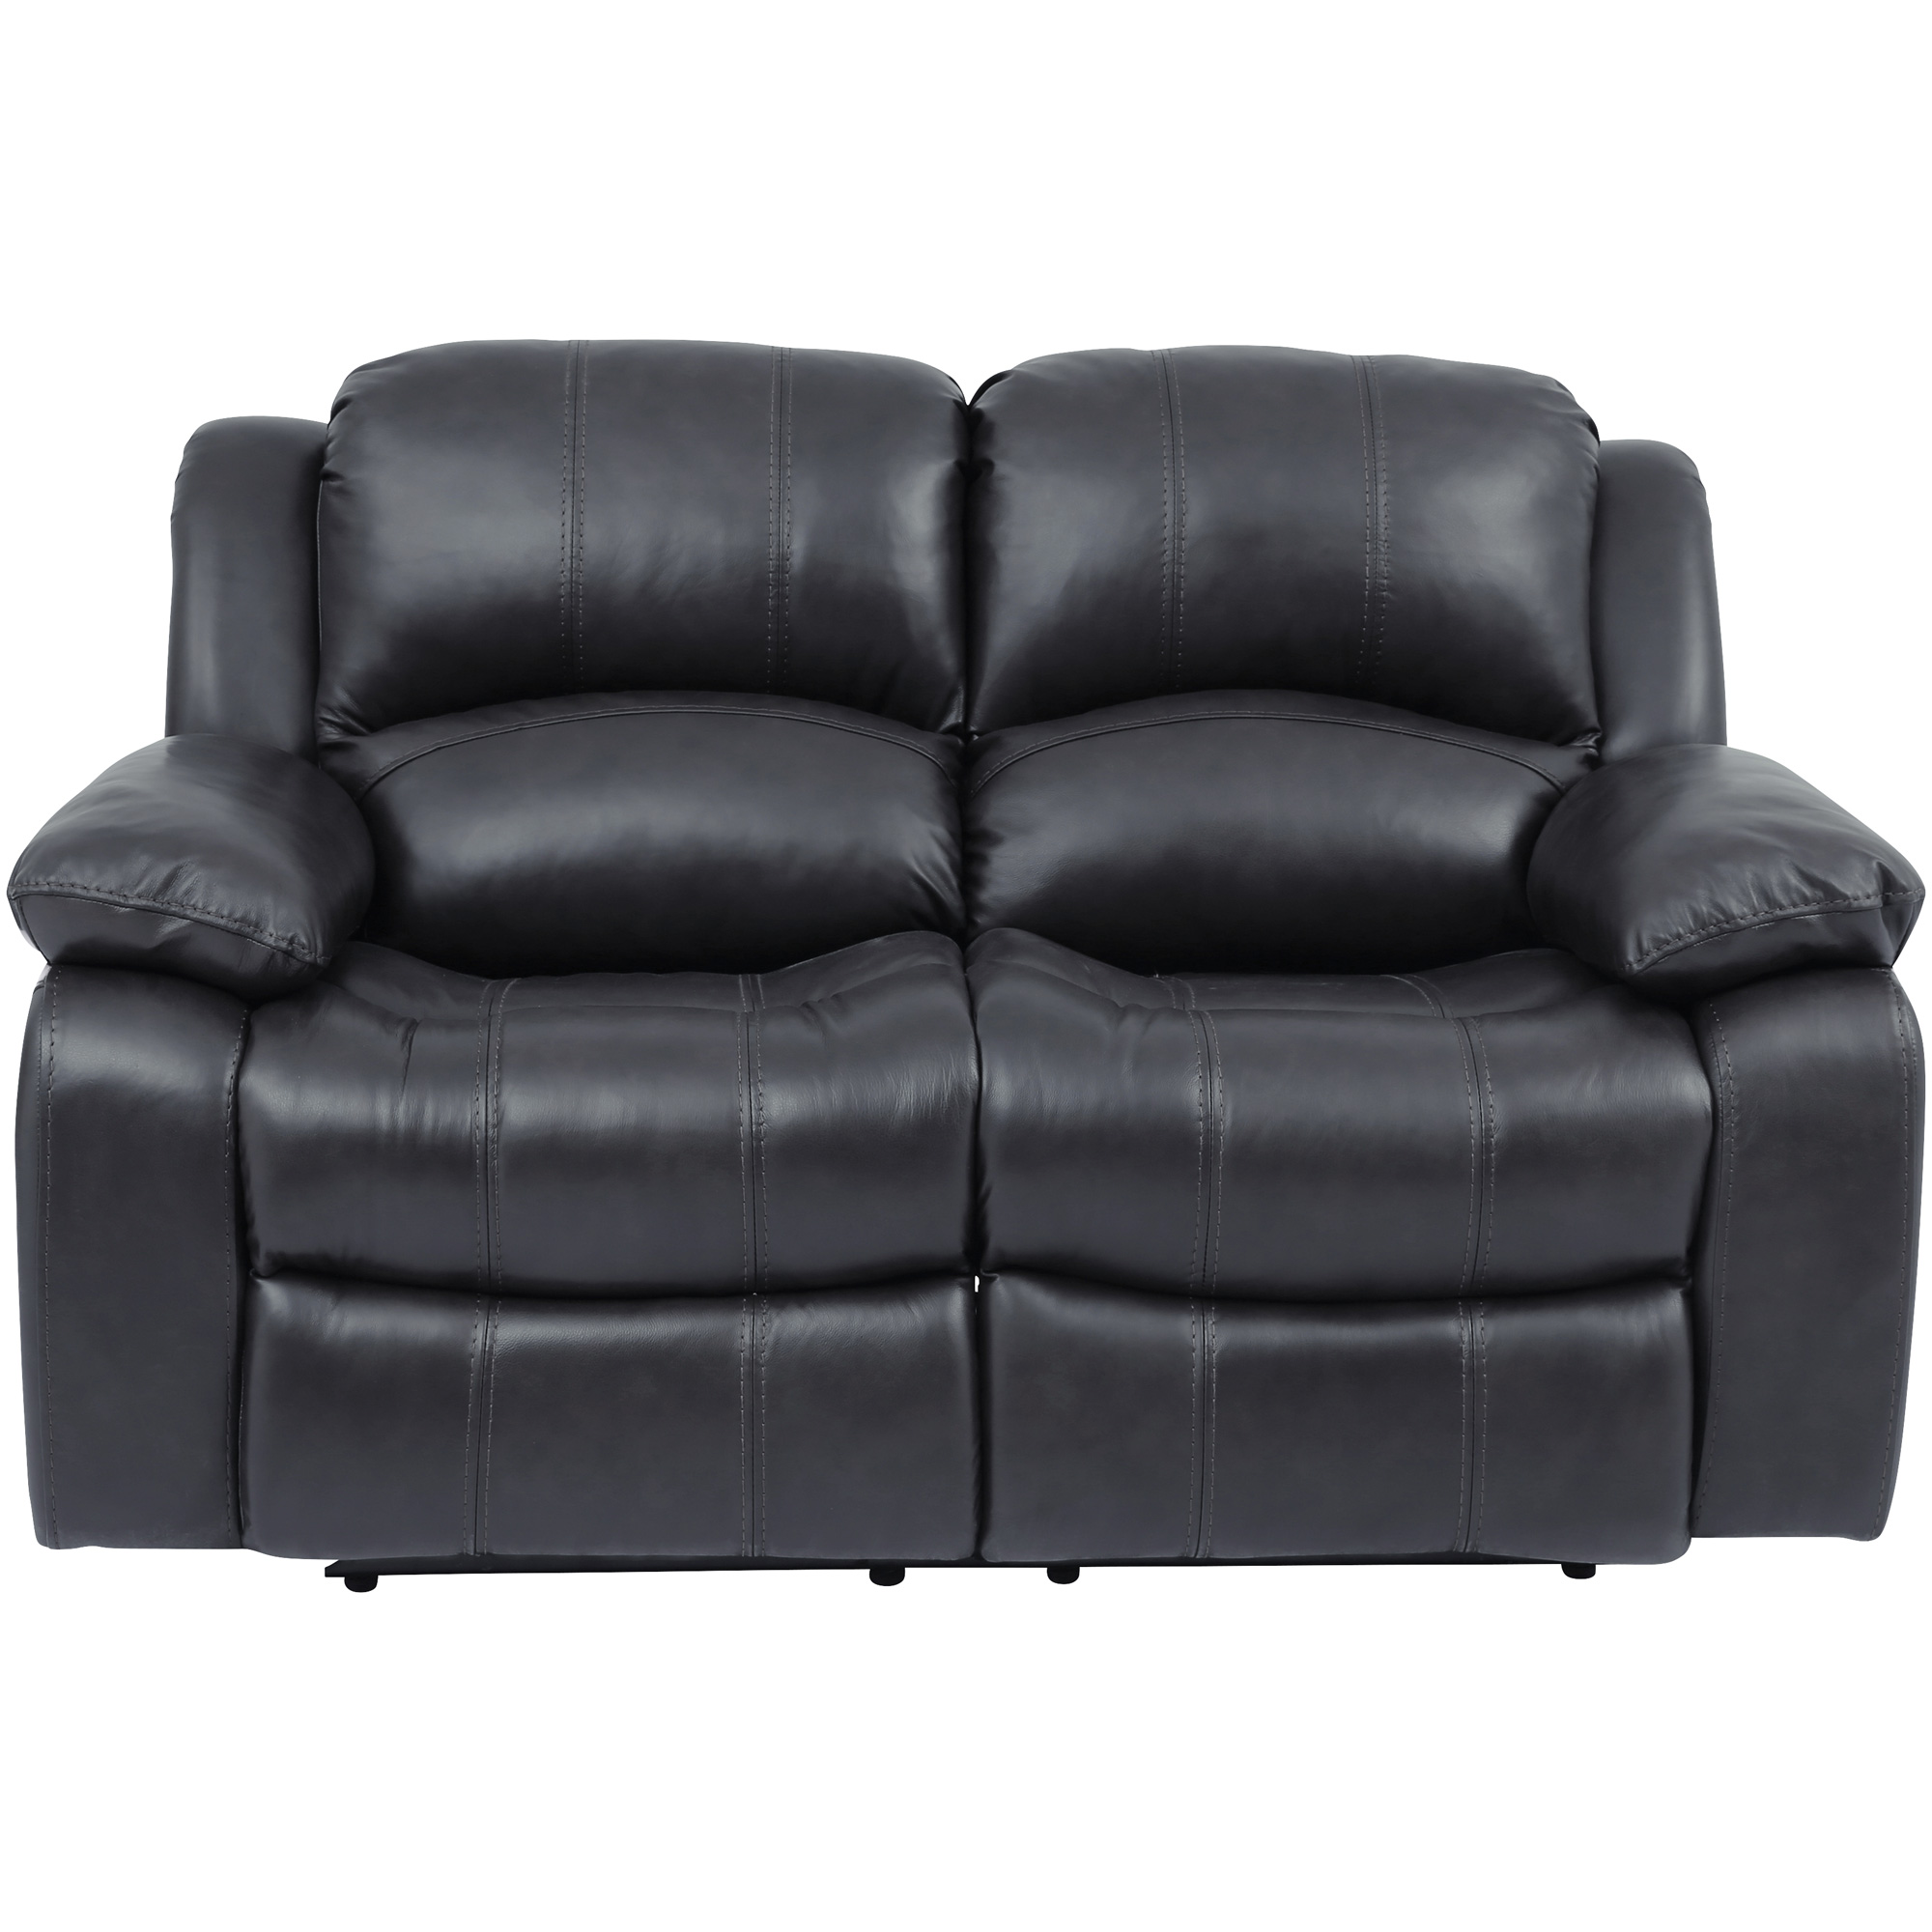 Wah Cheers | Ender Gray Leather Reclining Loveseat Sofa